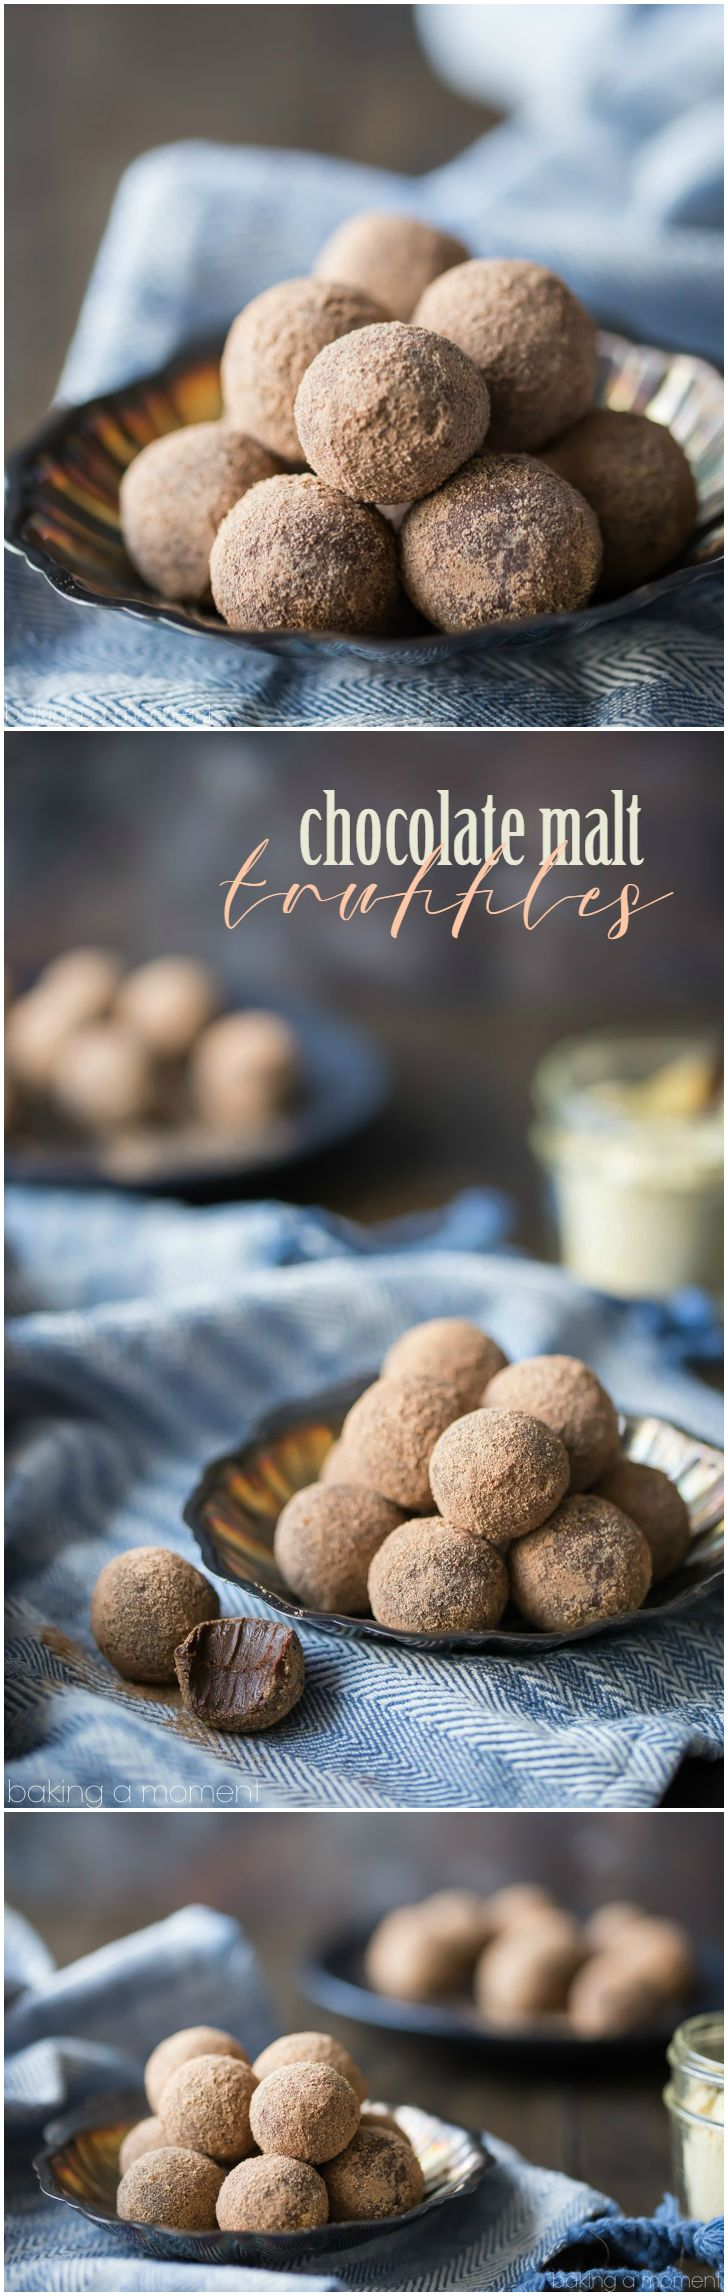 Need an easy homemade gift? These chocolate malt truffles are sure to please! You